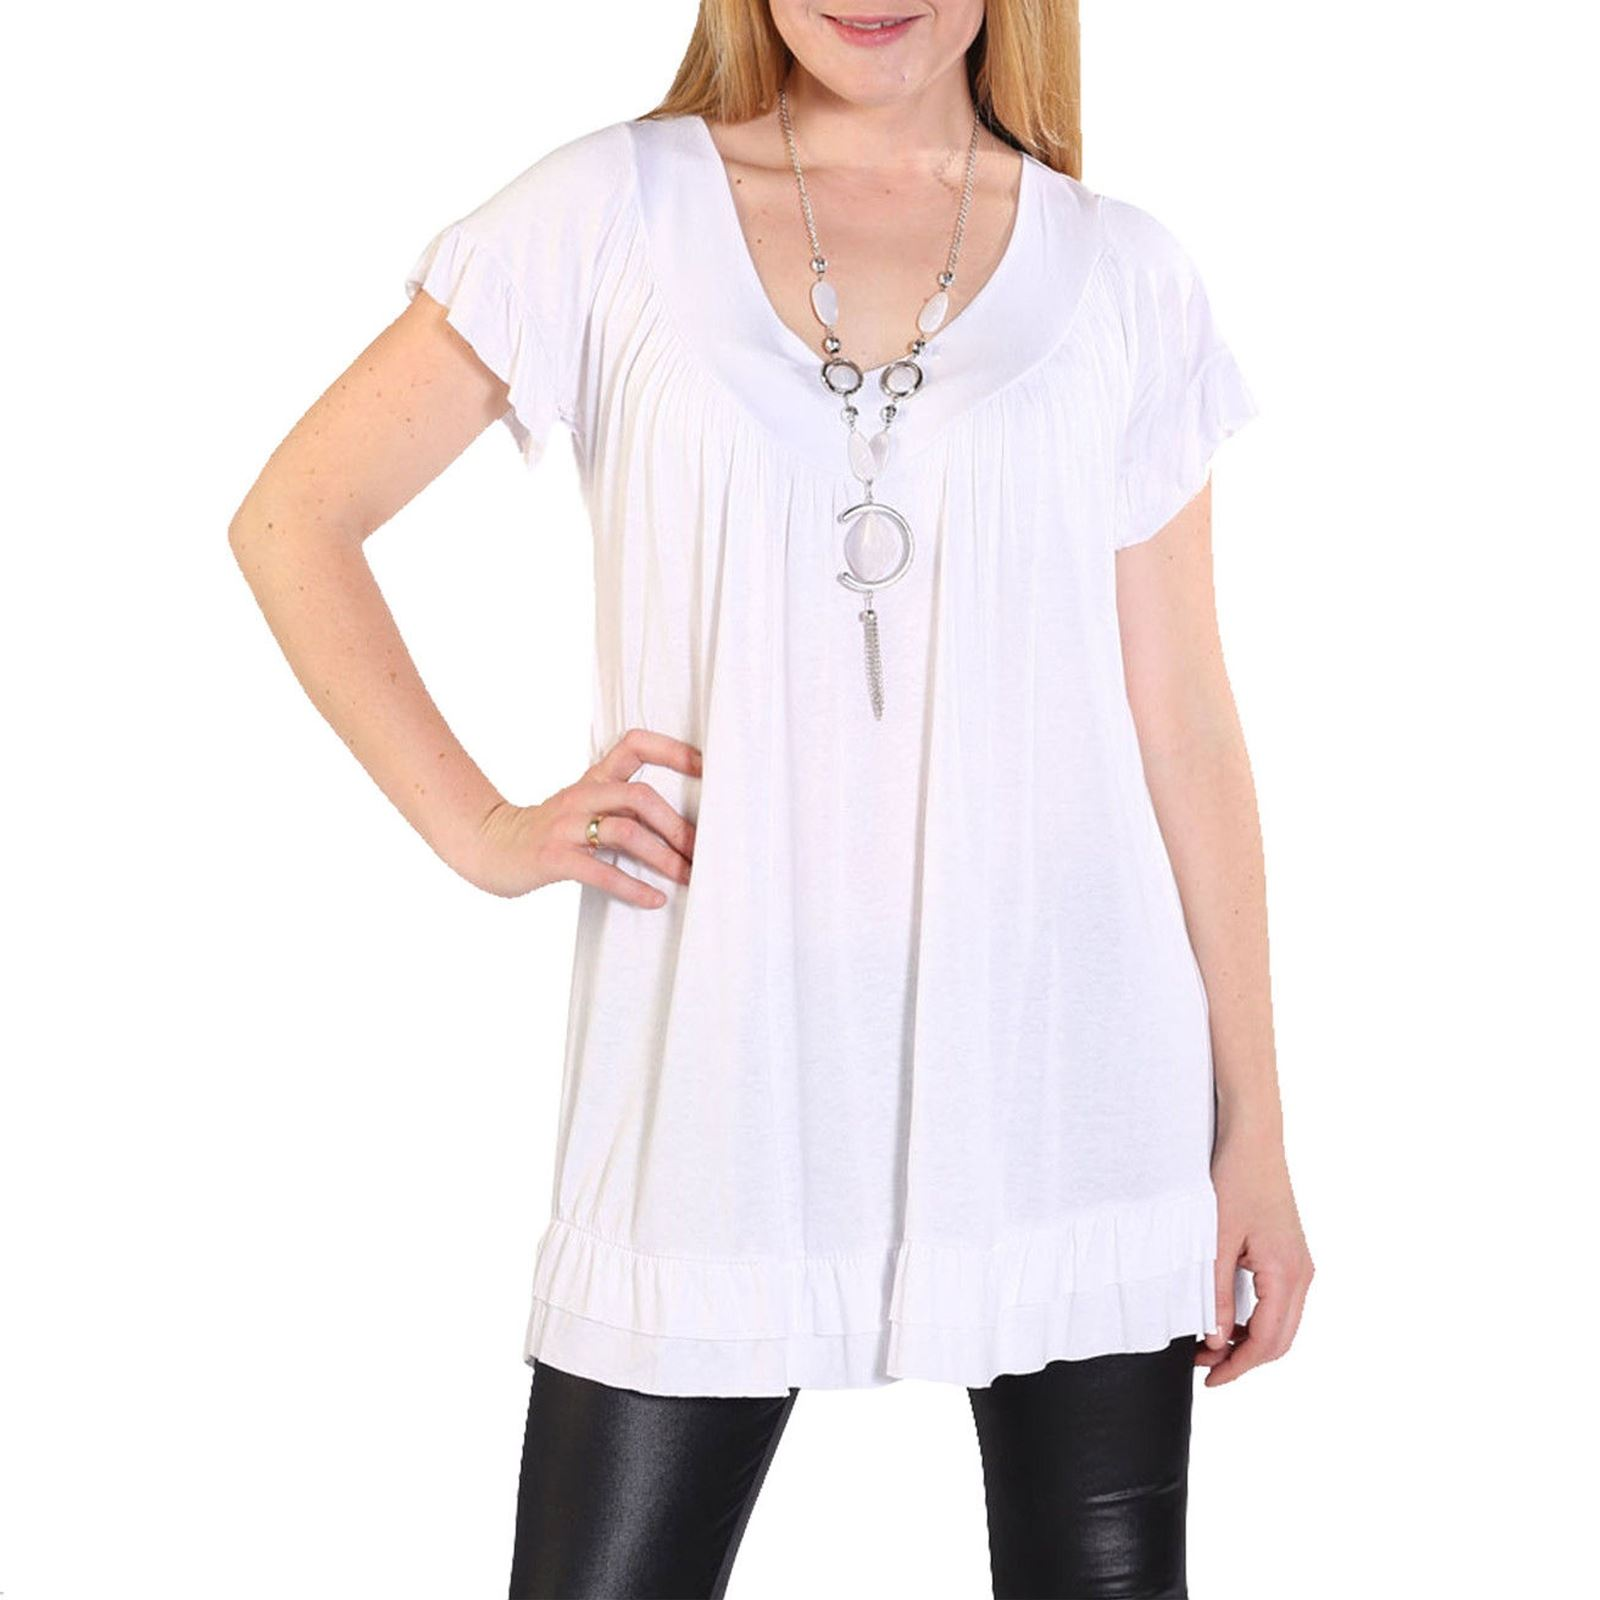 necklace womens evelin knitted top batwing tops